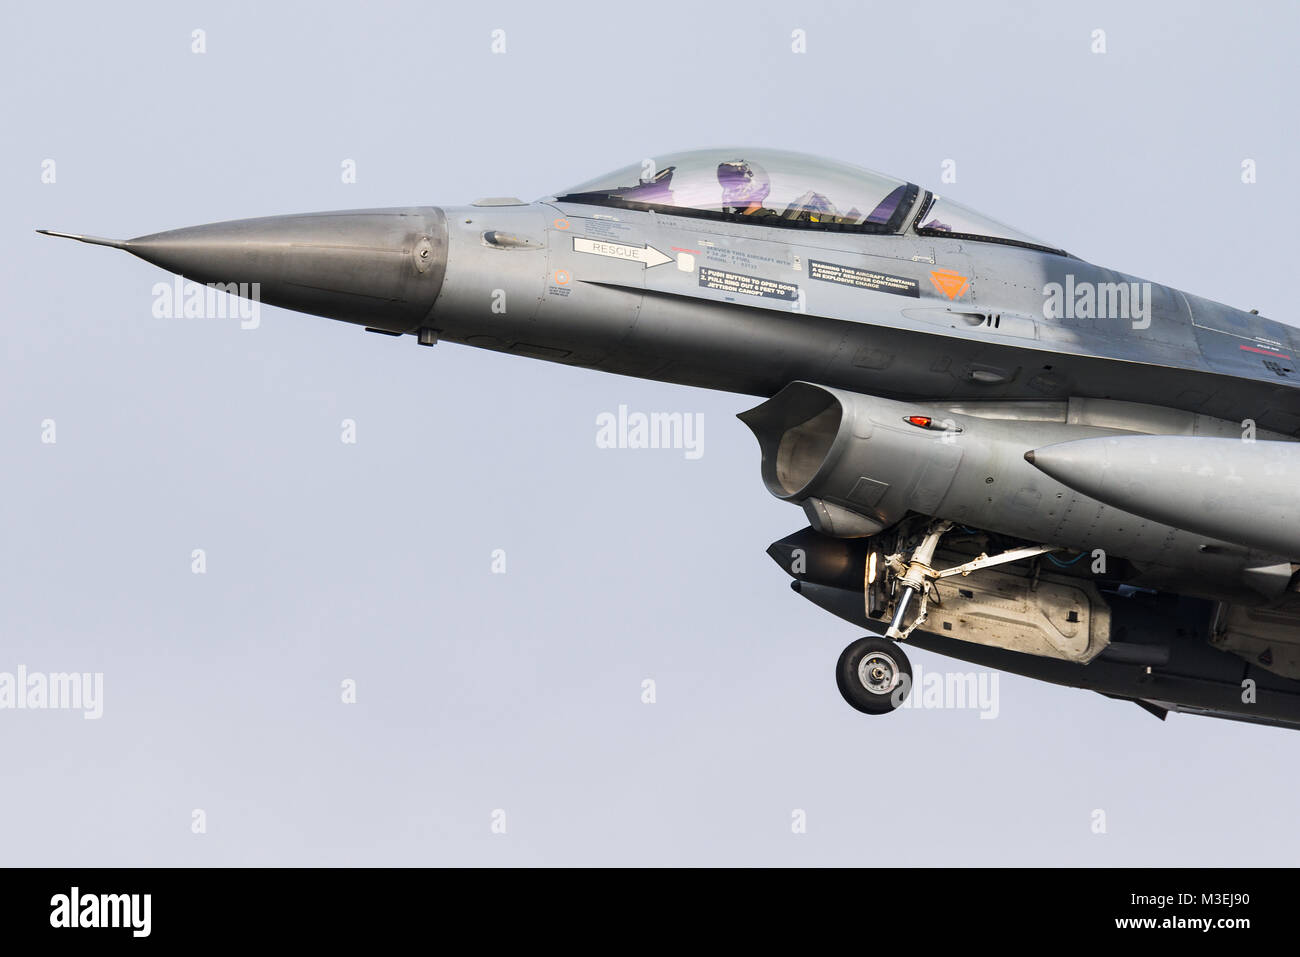 A F-16 fighter jet of the Belgian Air Force is ready to land at the Kleine Brogel Air Base in Belgium. Stock Photo